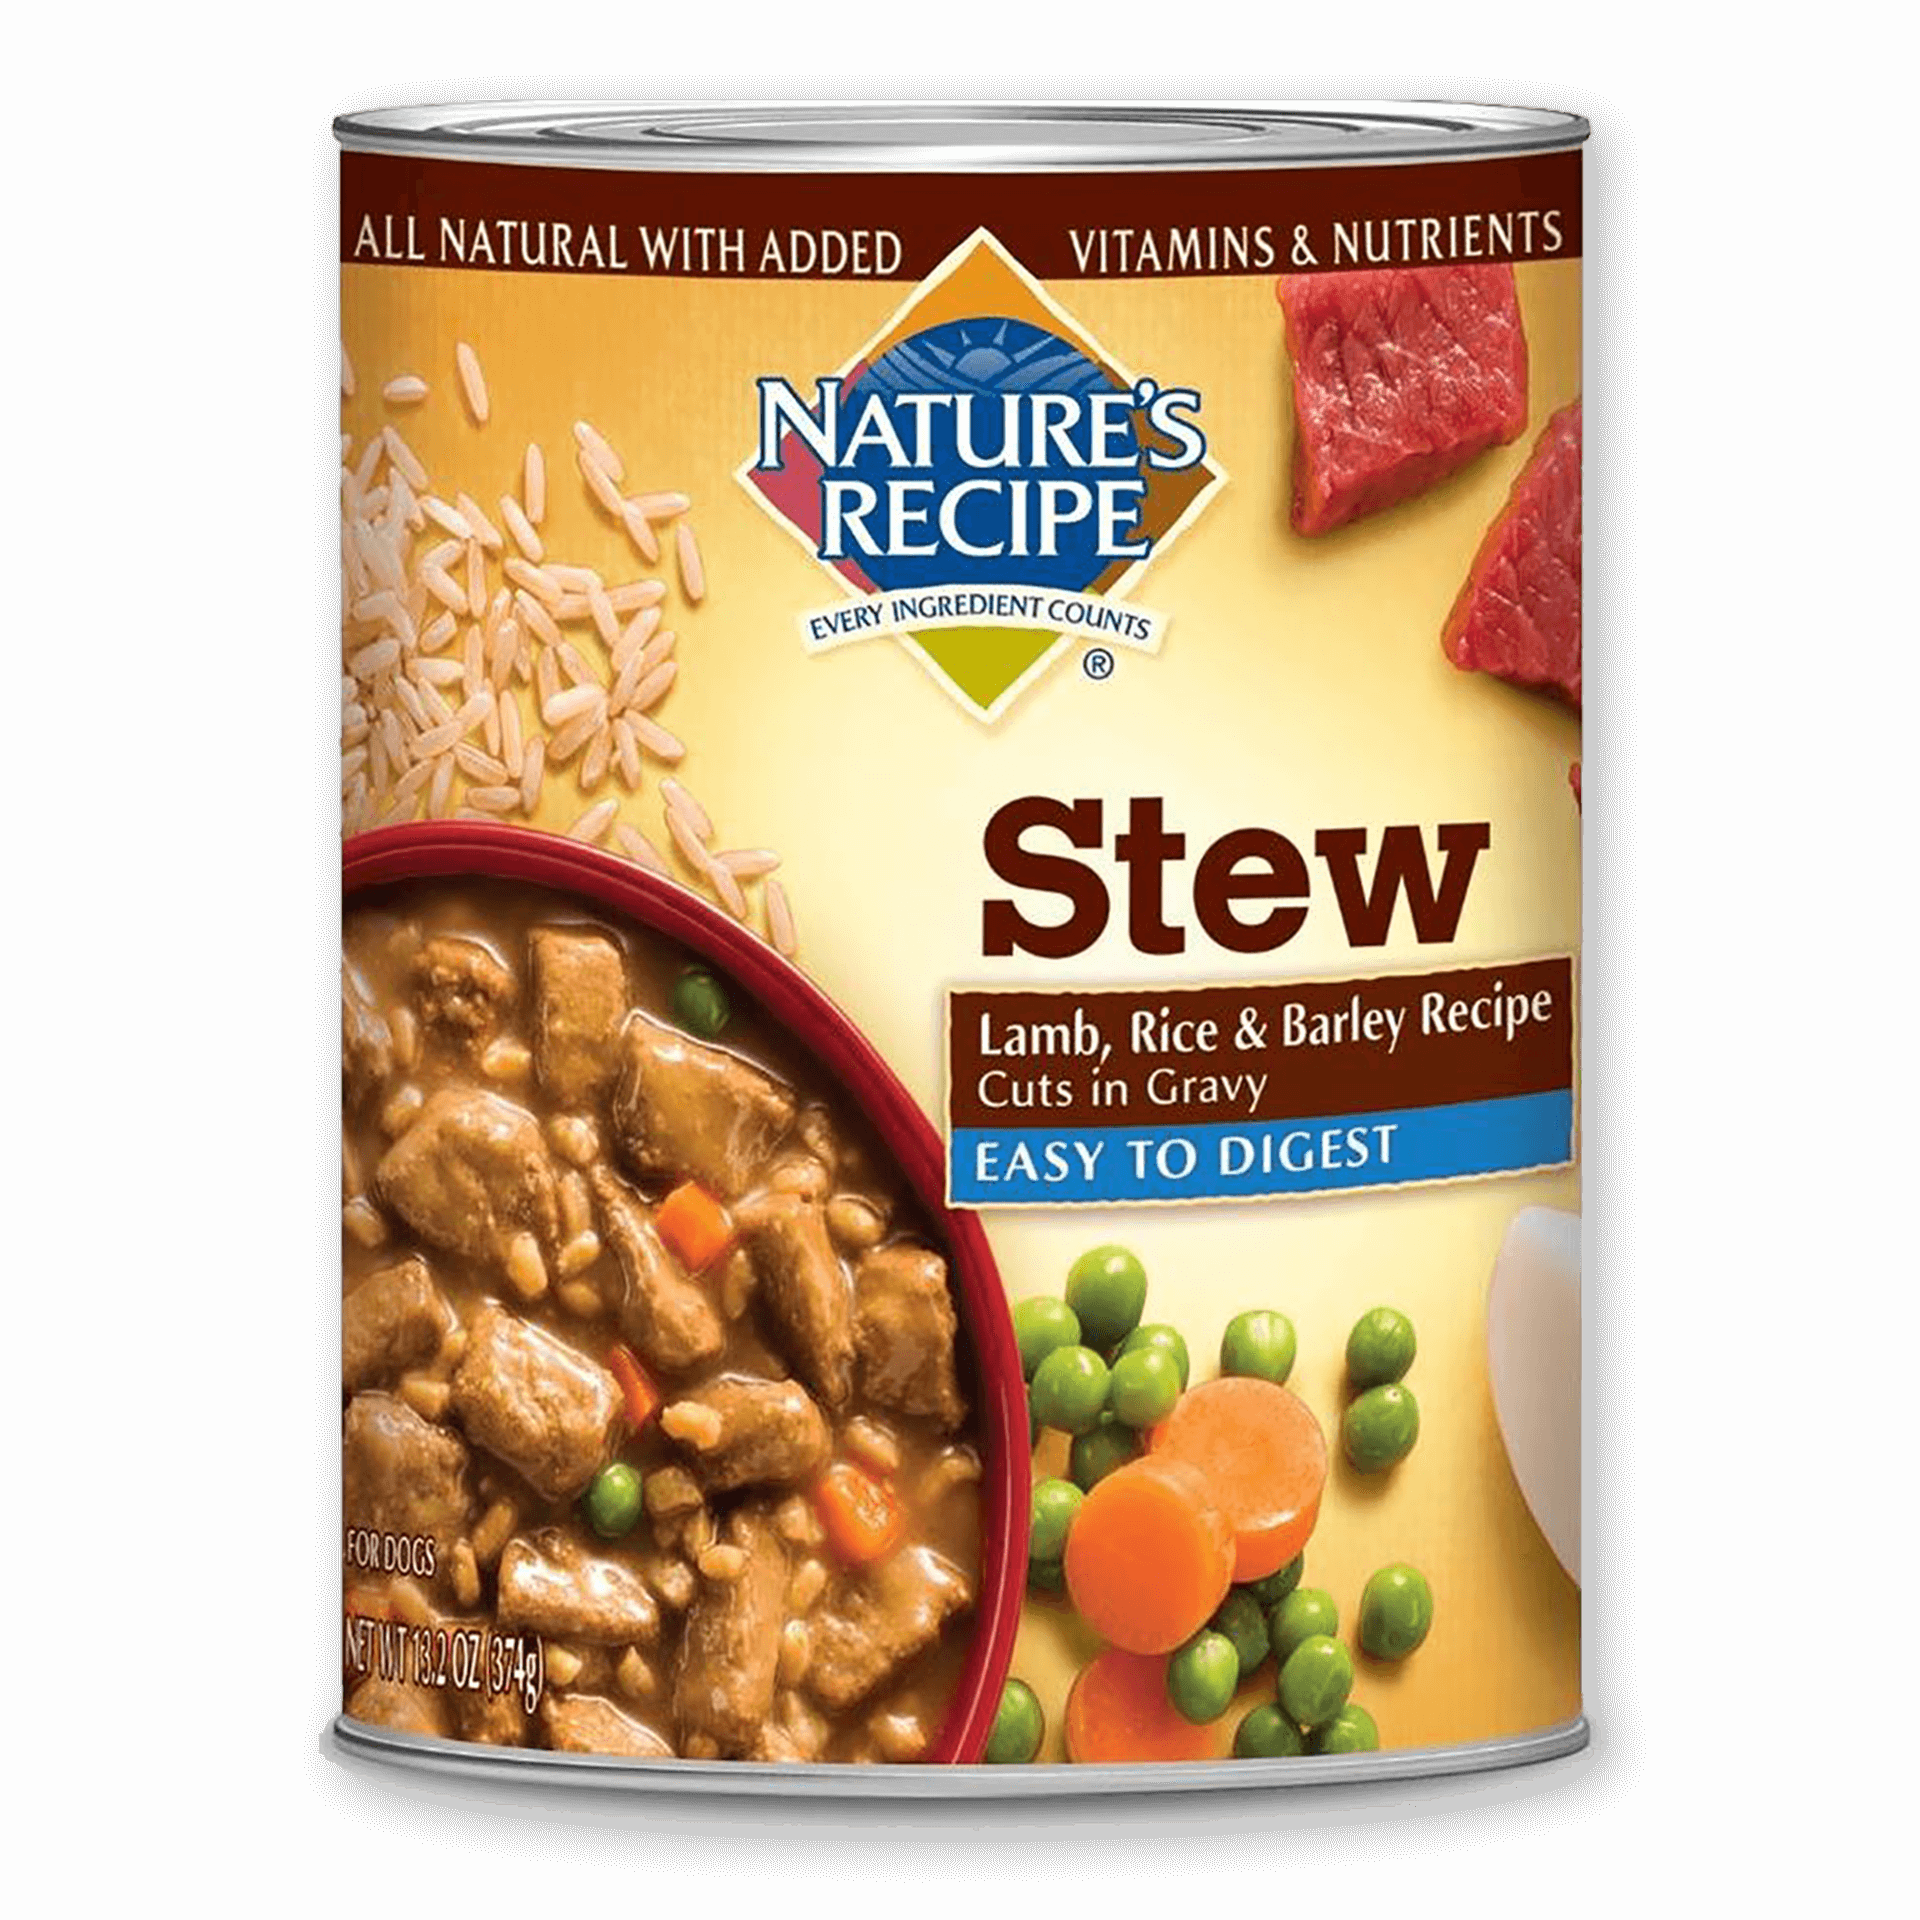 Stew Easy to Digest Lamb, Rice, & Barley Recipe Cuts In Gravy